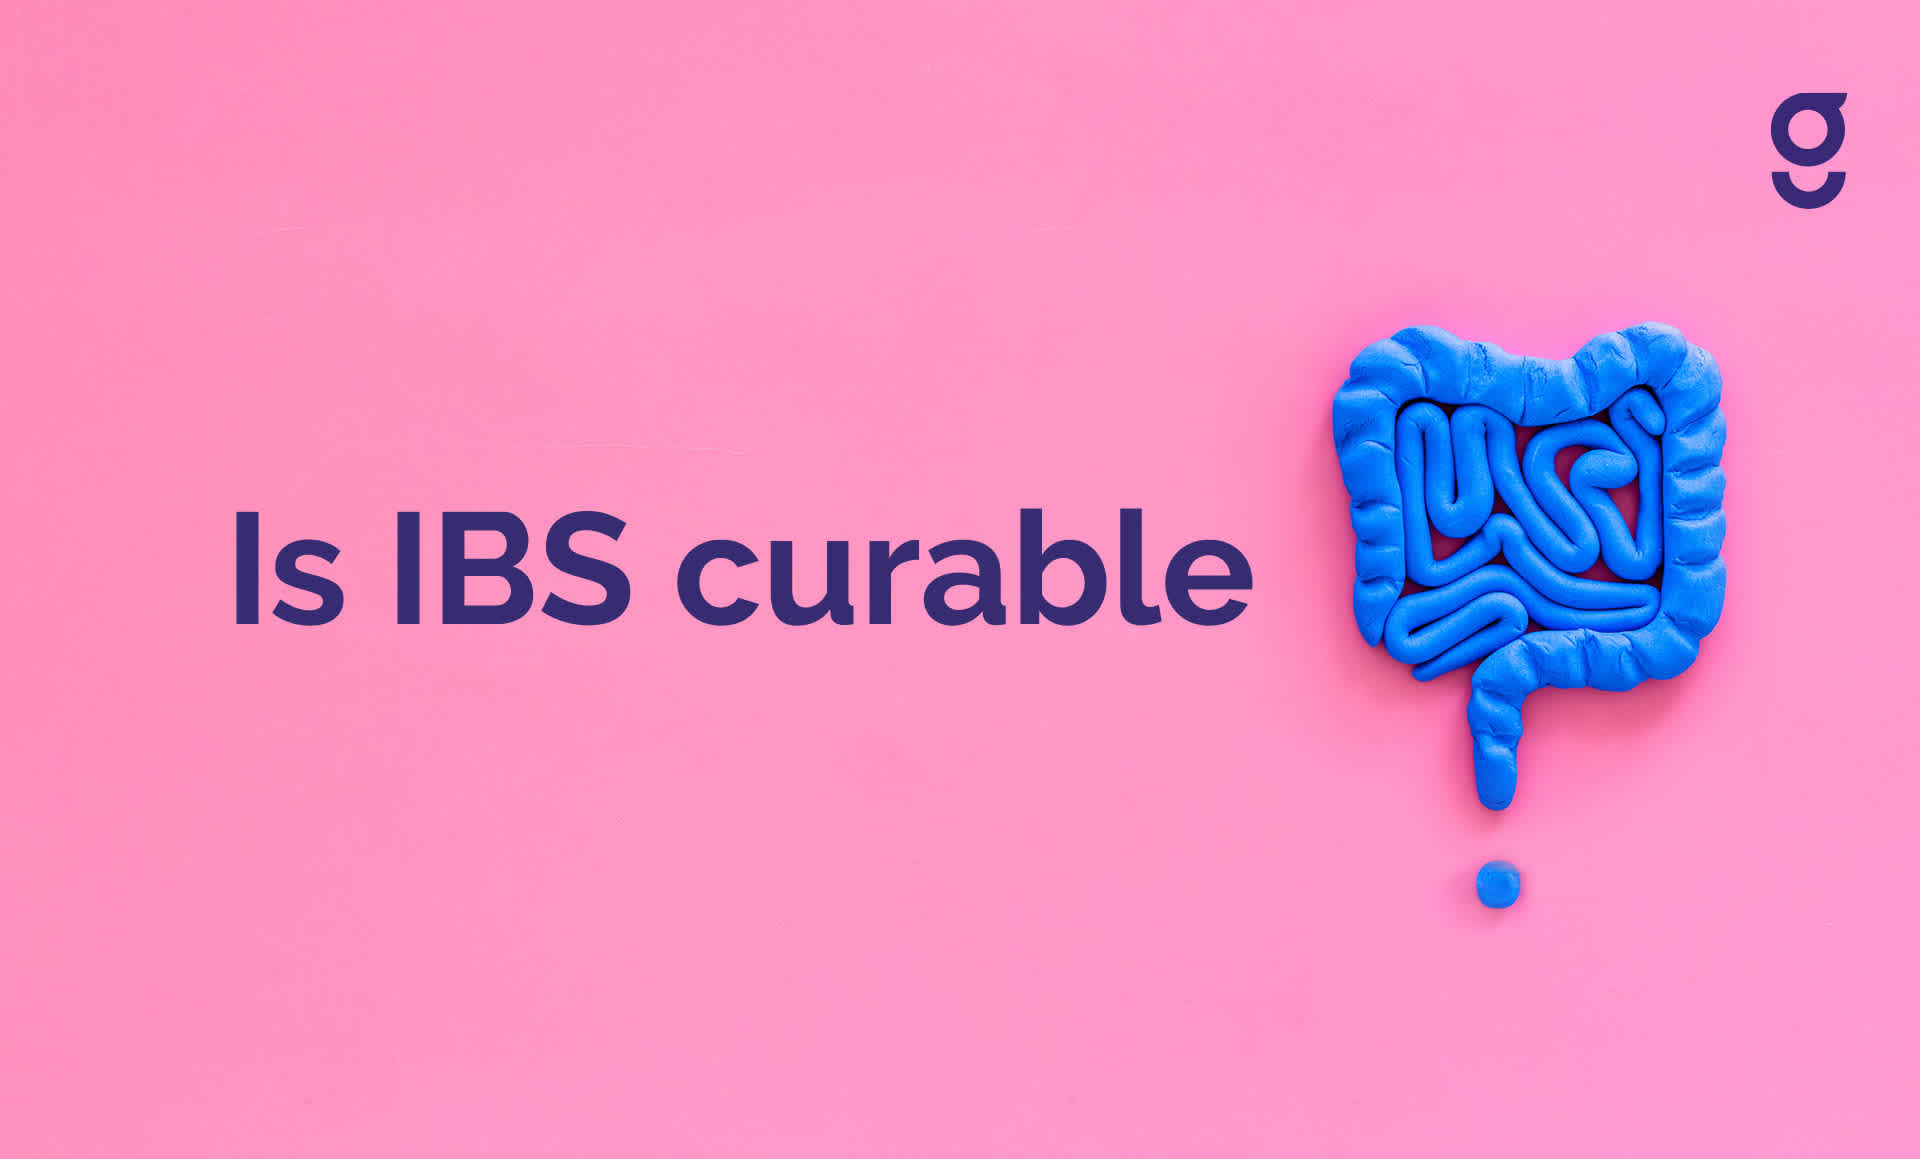 Is Irritable Bowel Syndrome curable?